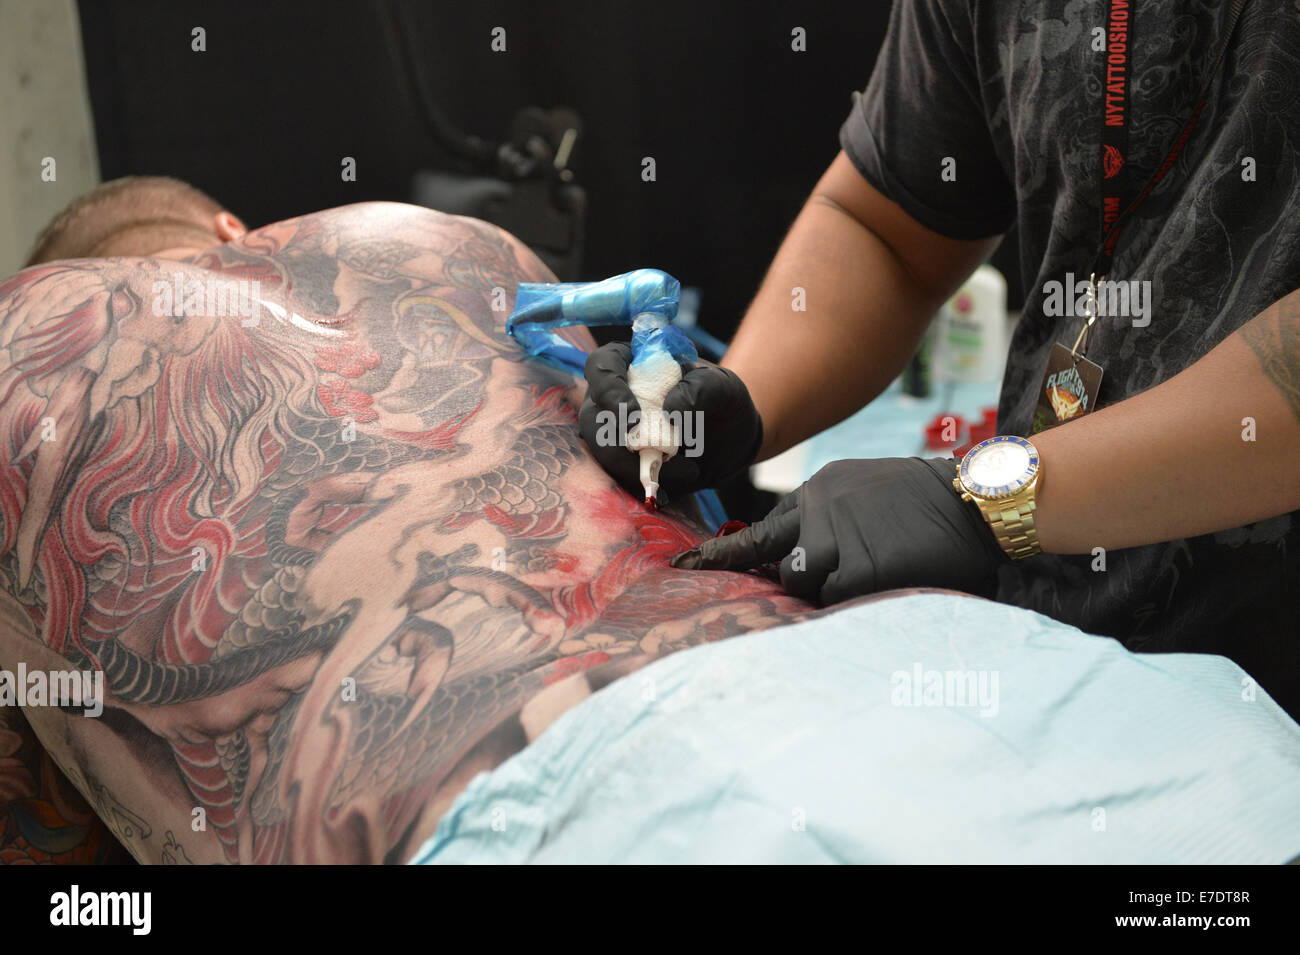 Garden City, New York, USA. 14th Sep, 2014. Tattoo artist MASTER MIKE, from Cambodia, tattoos the back of a man - Stock Image